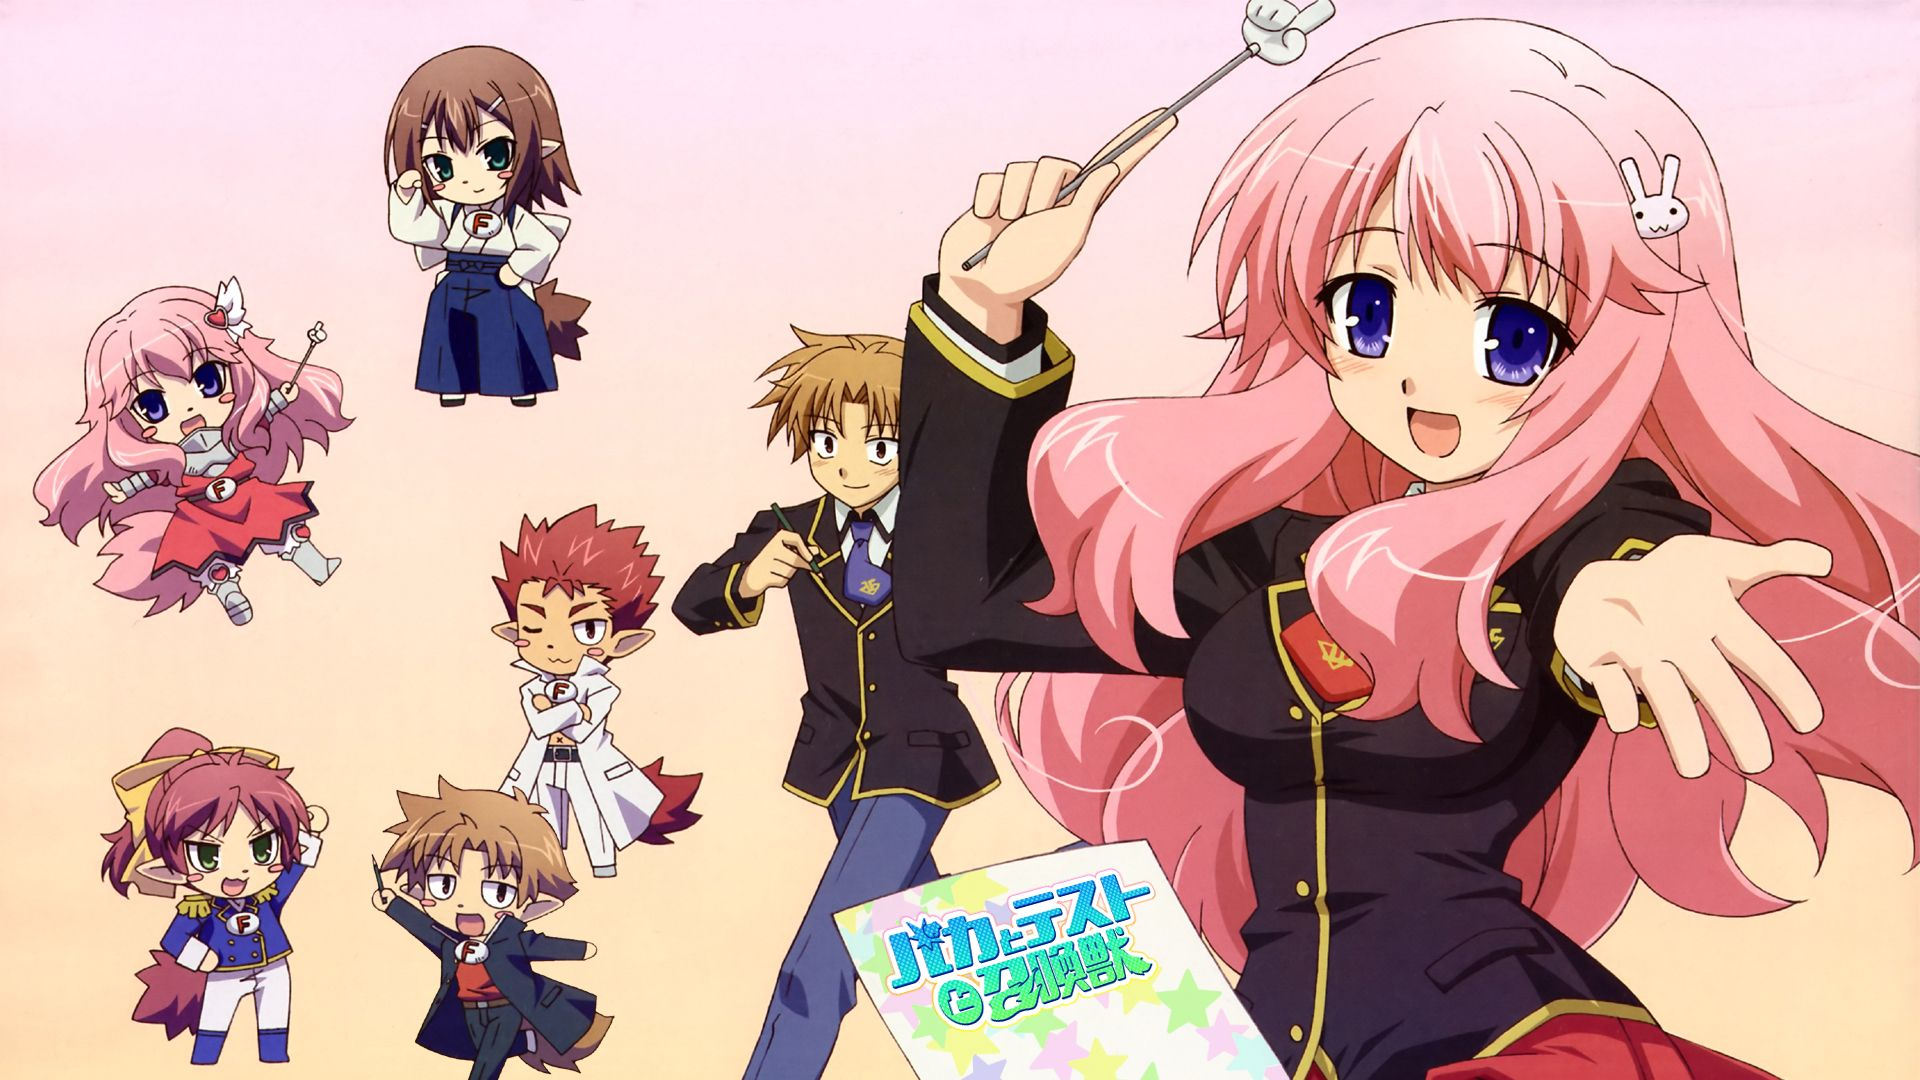 105 Baka And Test Hd Wallpapers Backgrounds Wallpaper Abyss